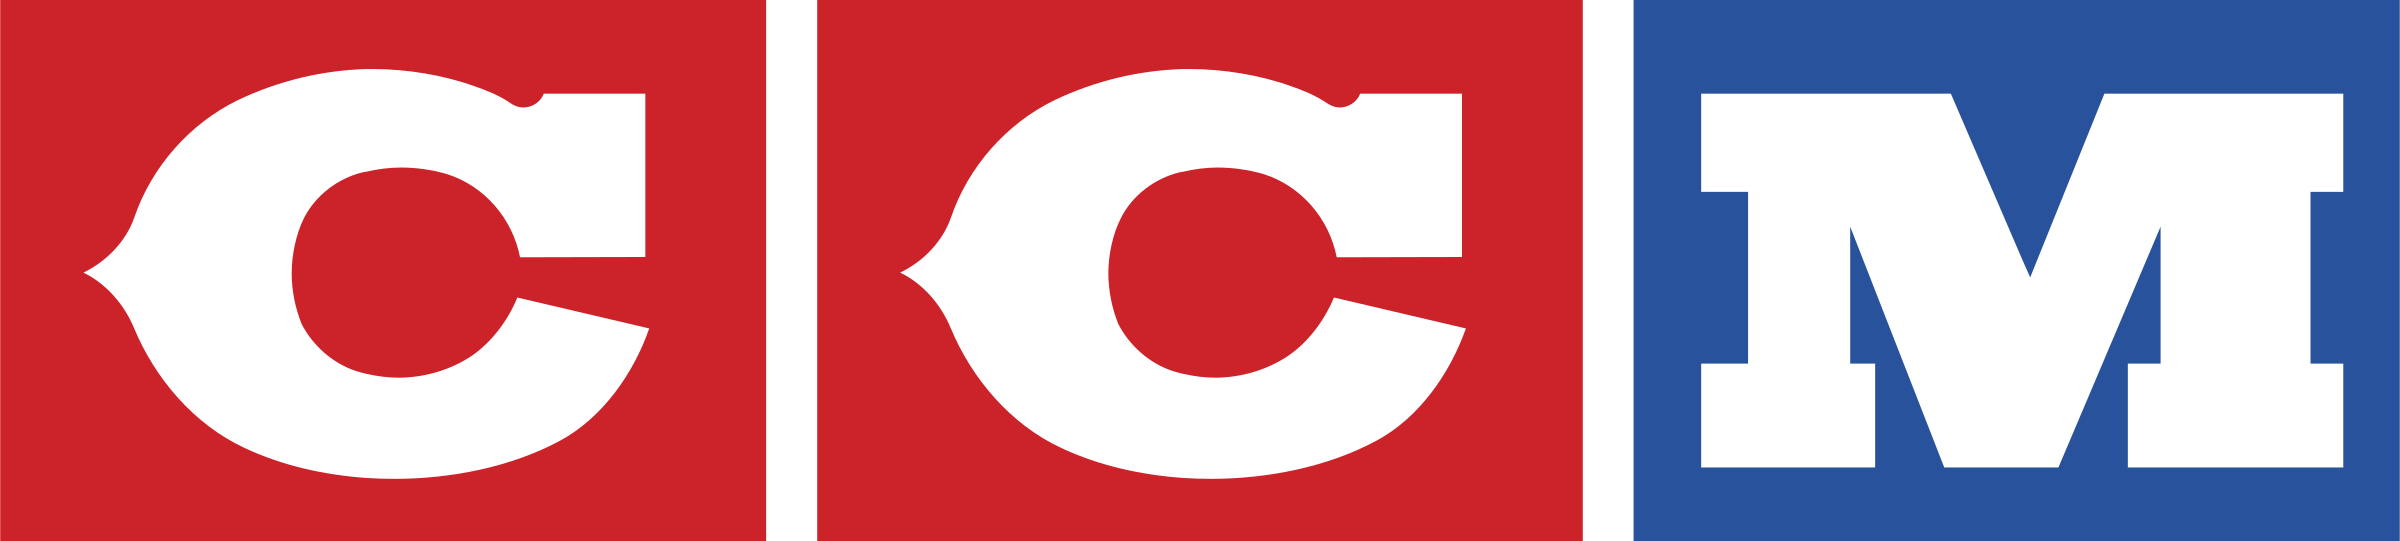 CCM Logo PNG Transparent & SVG Vector.